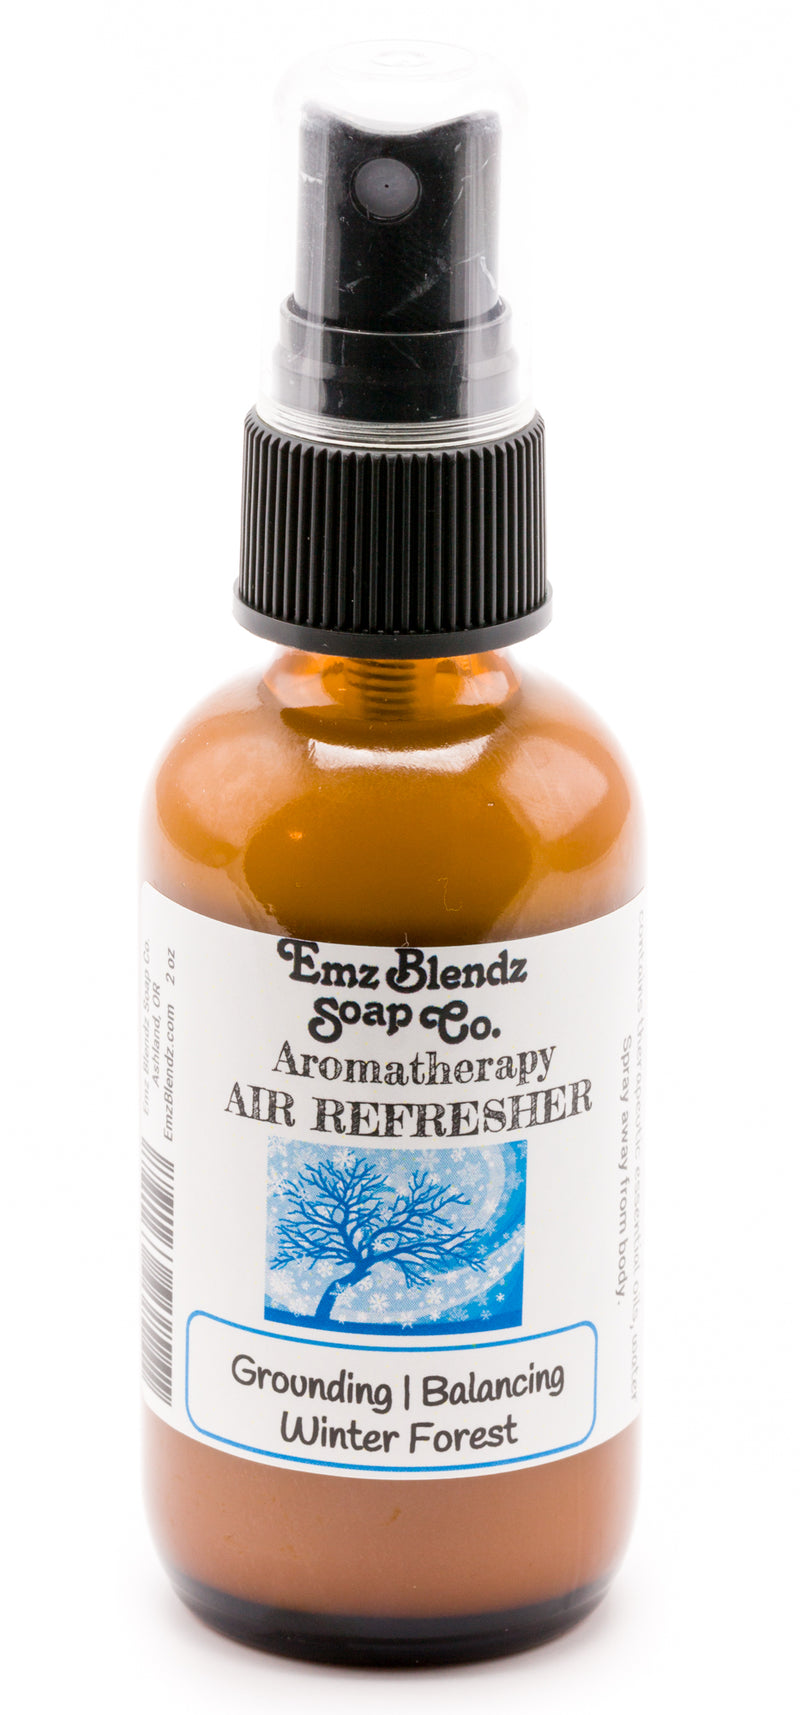 Winter Forest | Natural Aromatherapy Air Refresher | Grounding & Balancing - Emz Blendz